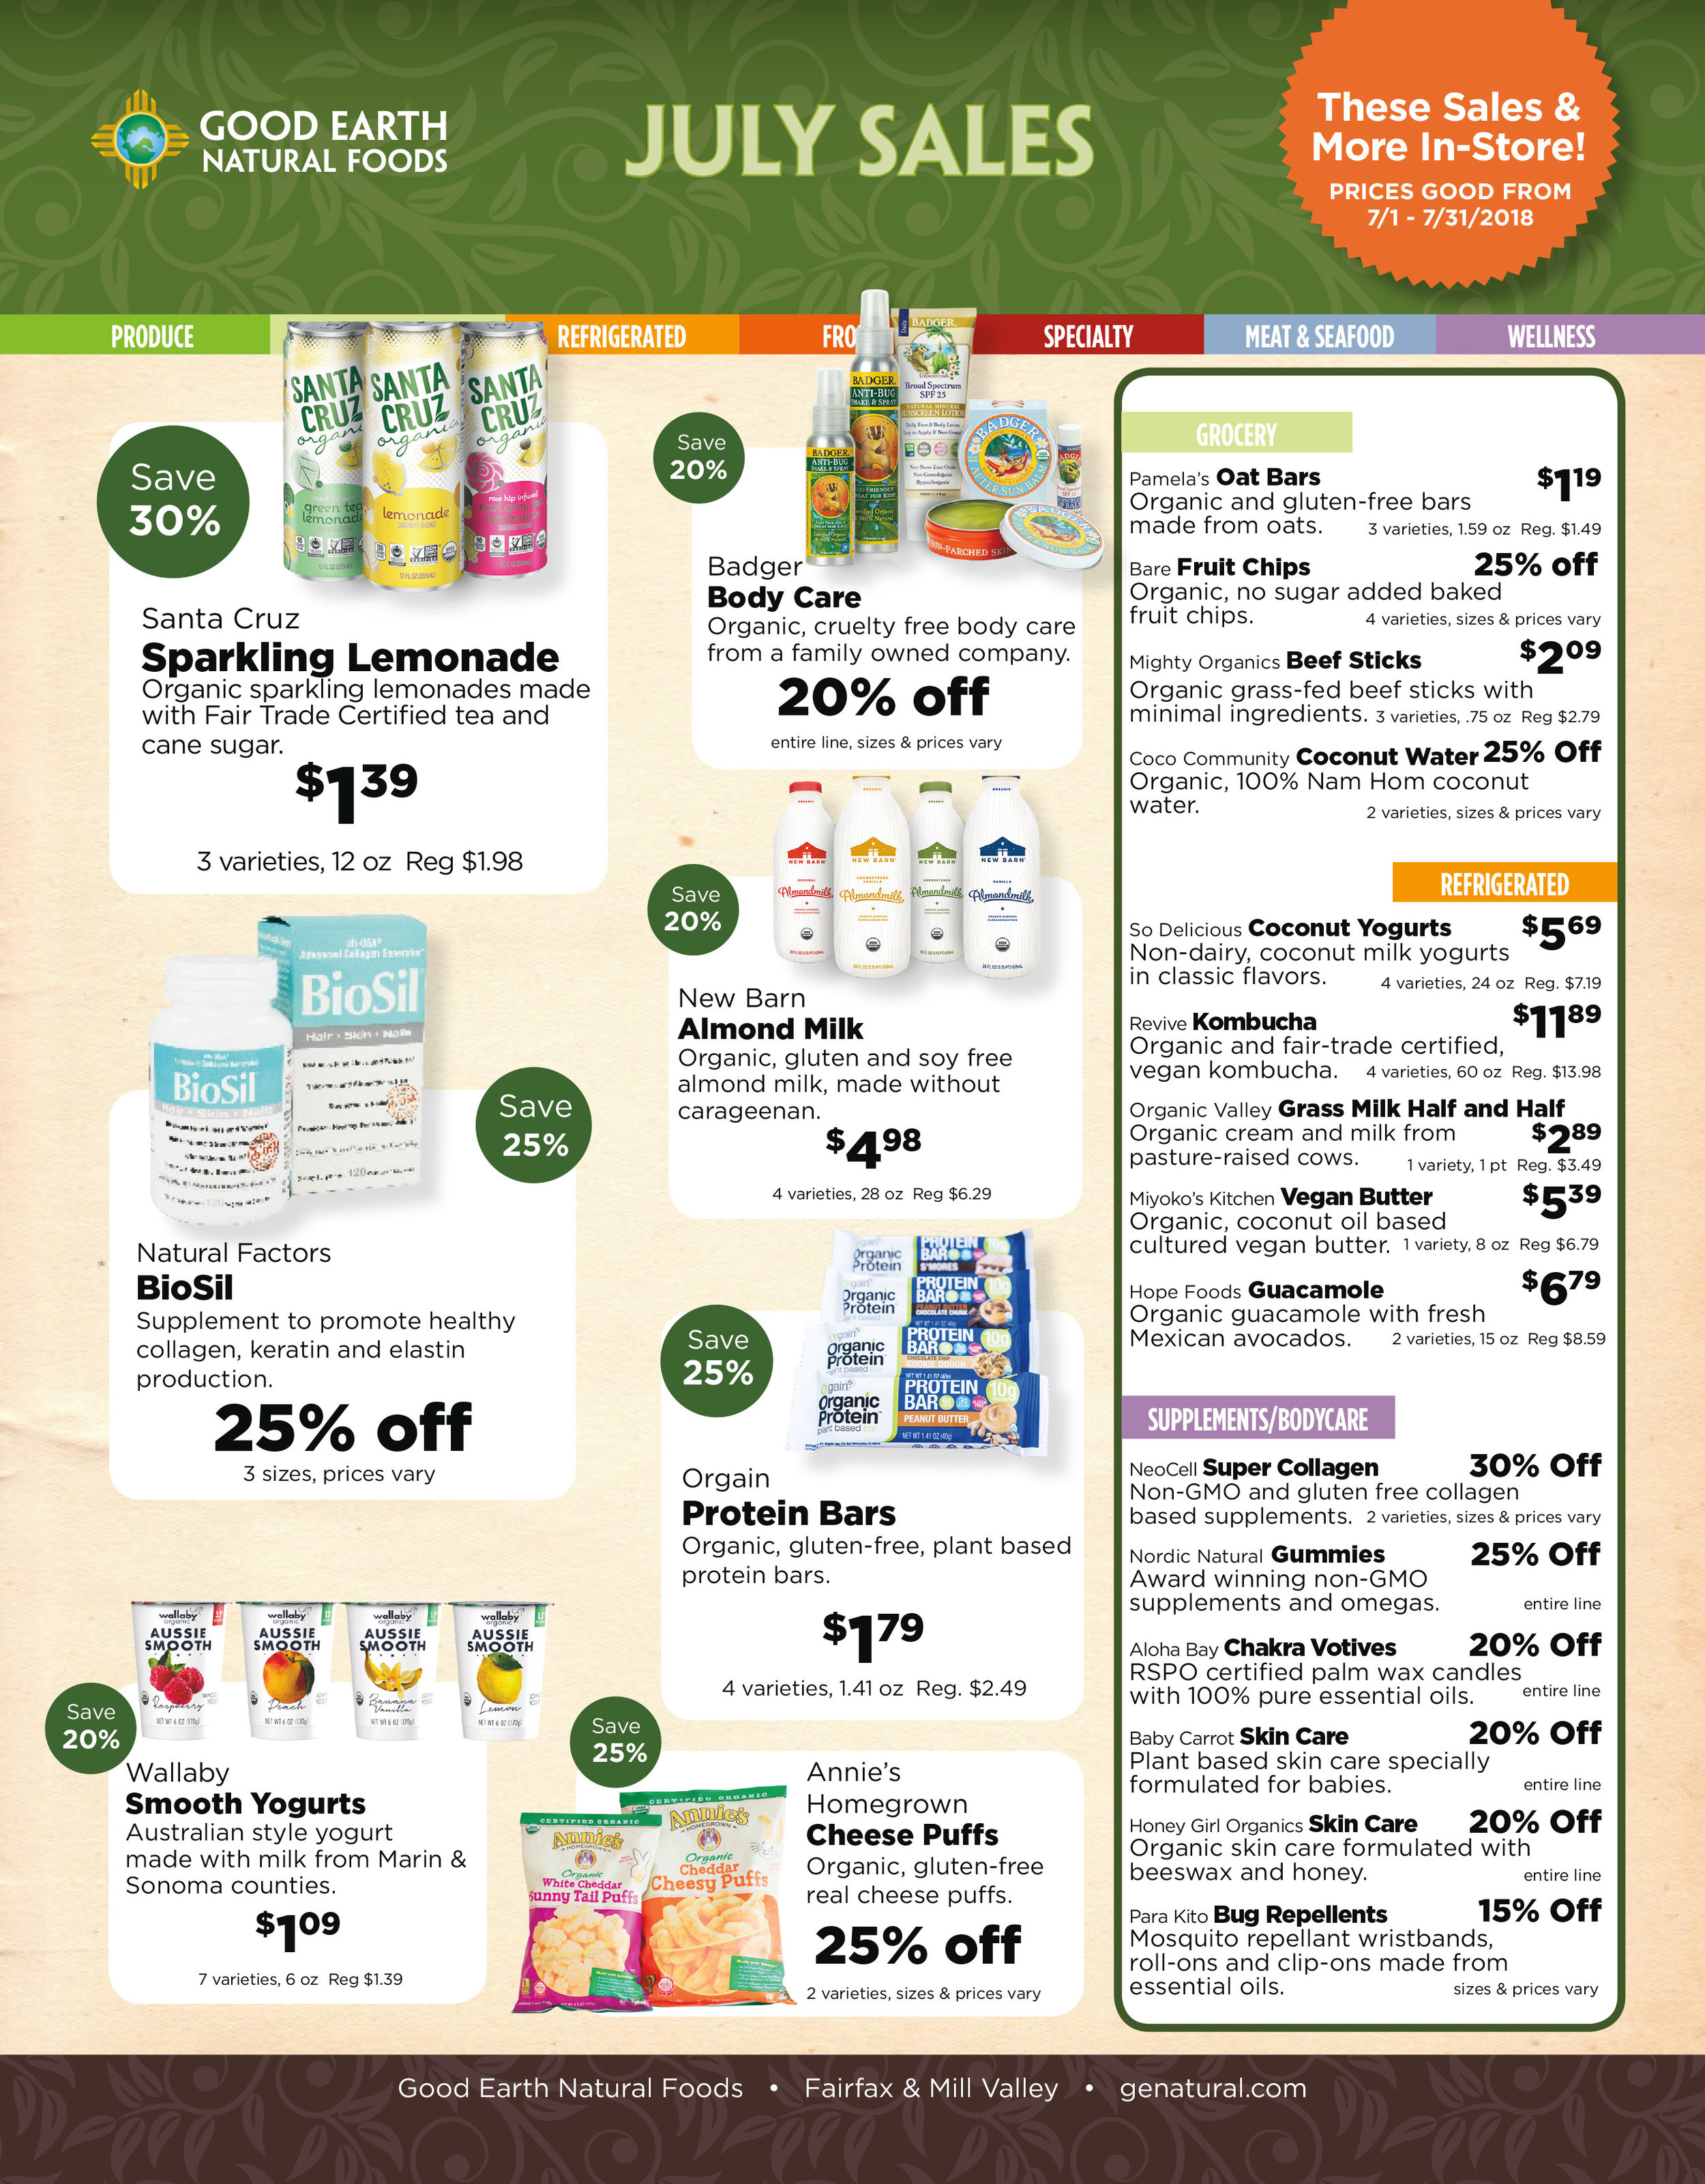 Old monthly sales sheet